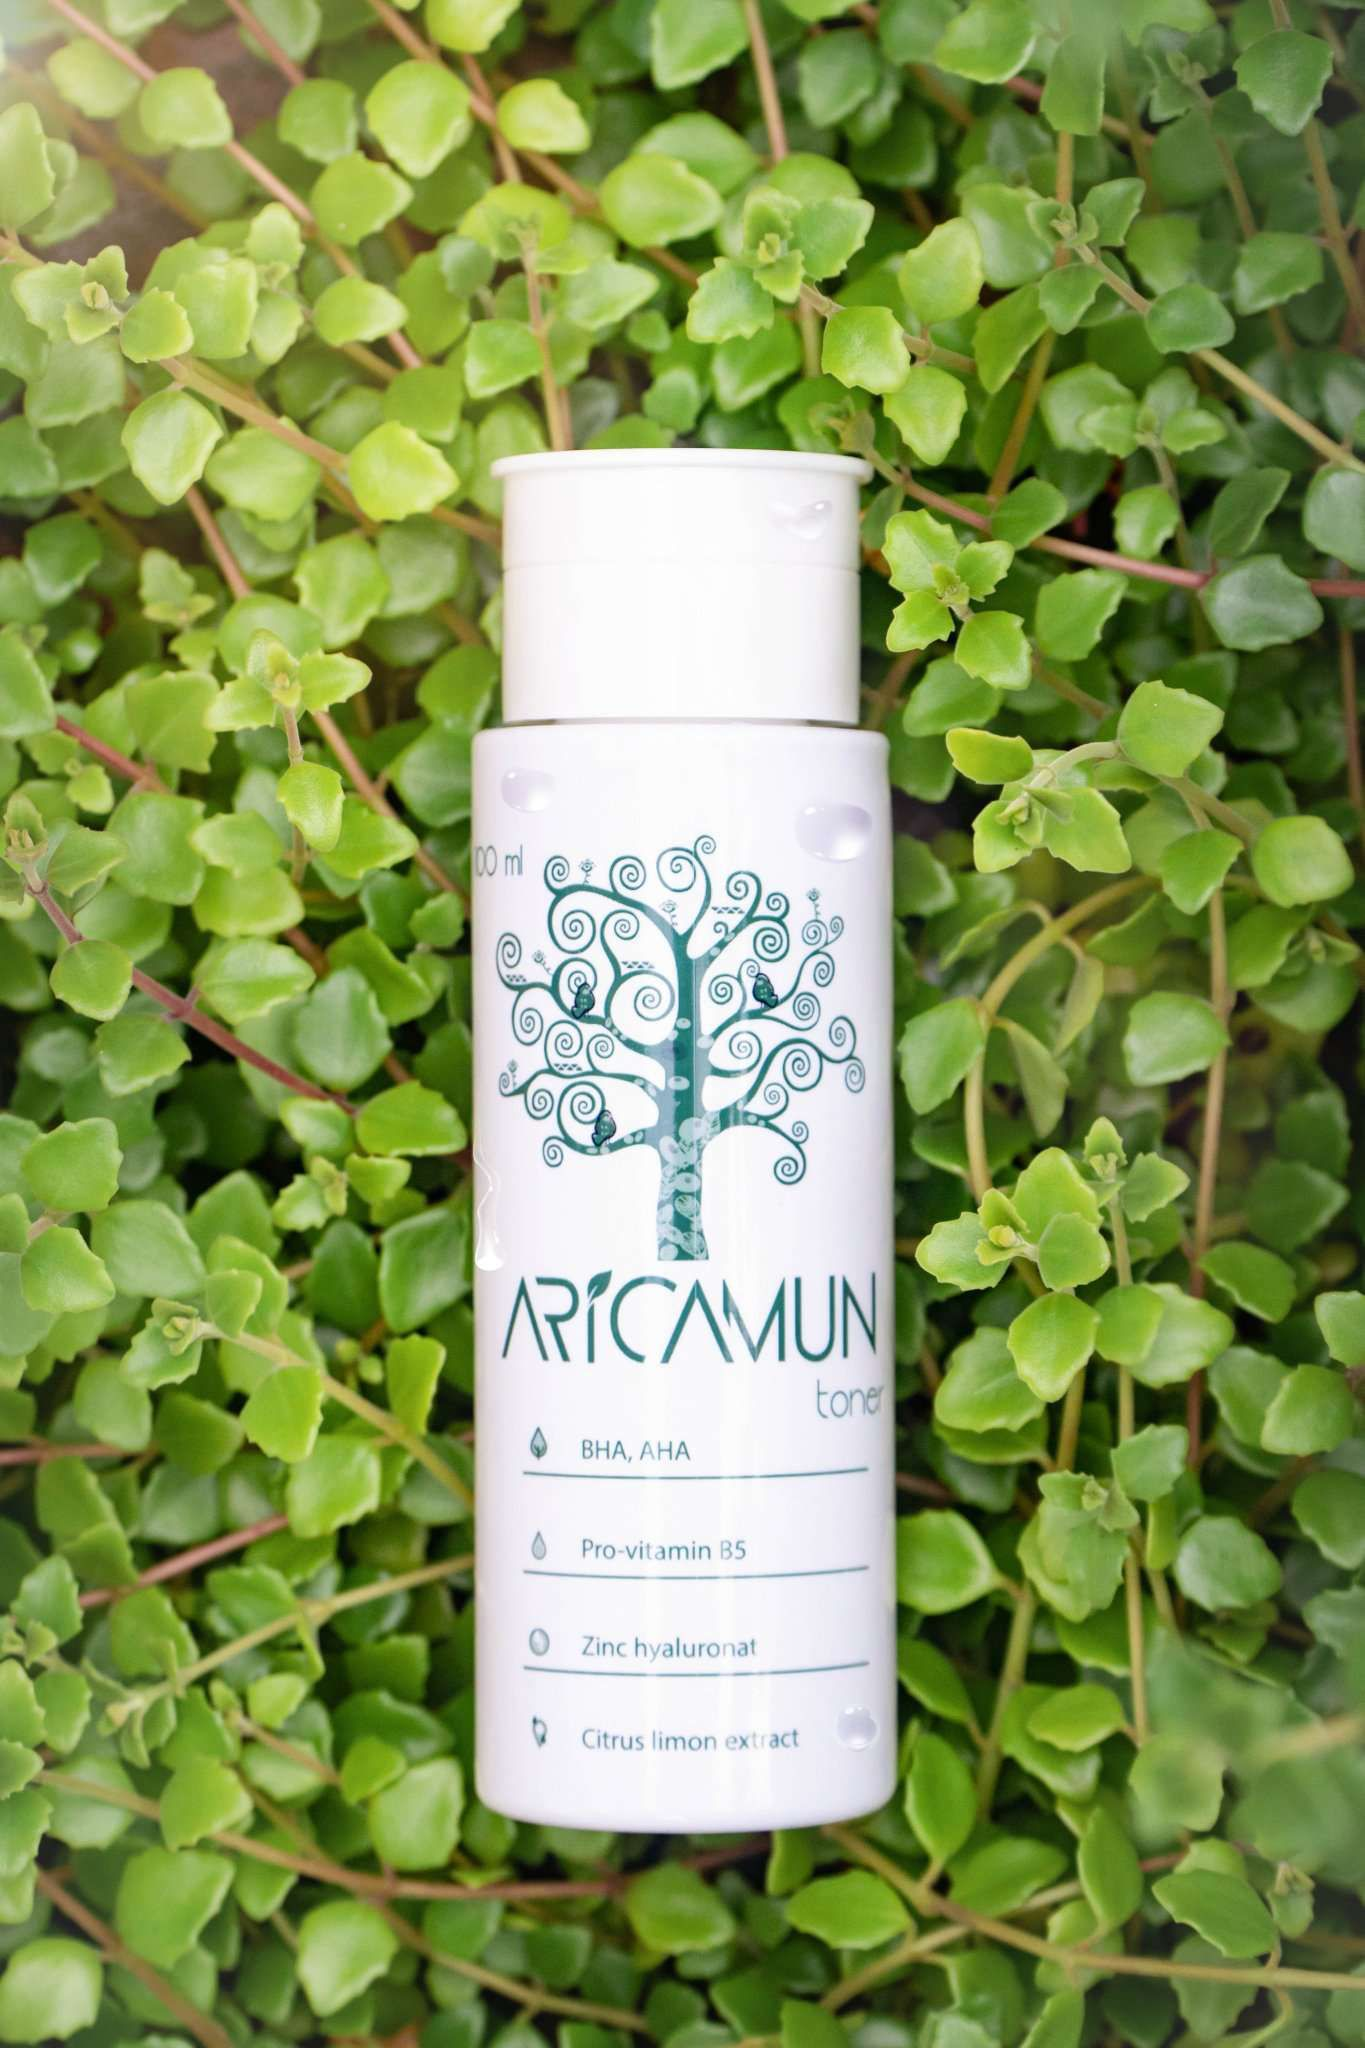 Aricamun Toner for pH Balance, Hydration and Remove some dead cells